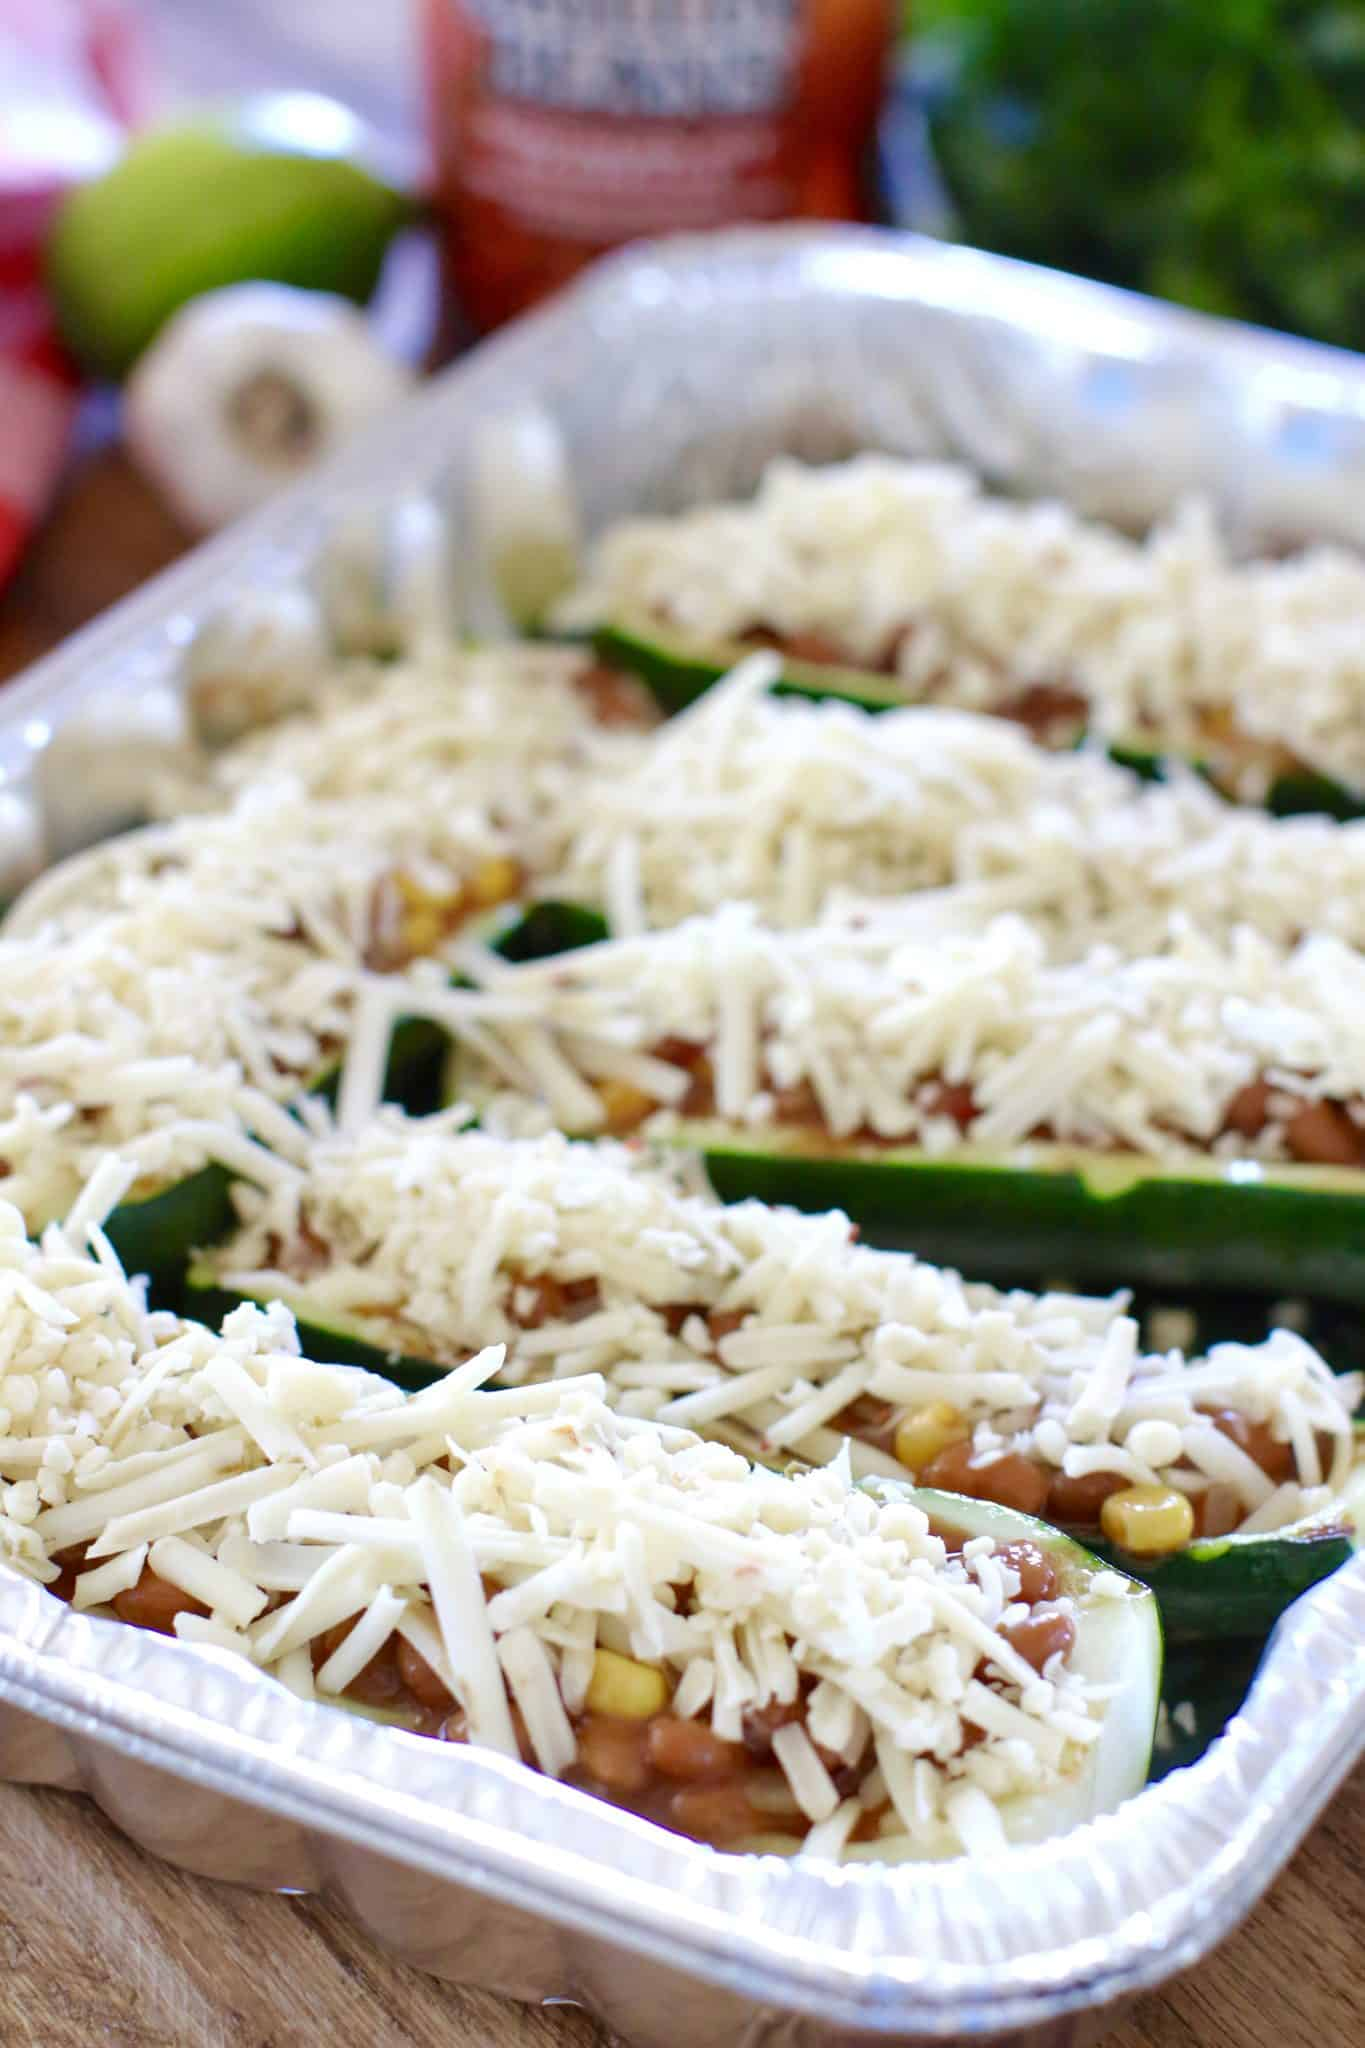 shredded cheese sprinkled on top of zucchini halves.